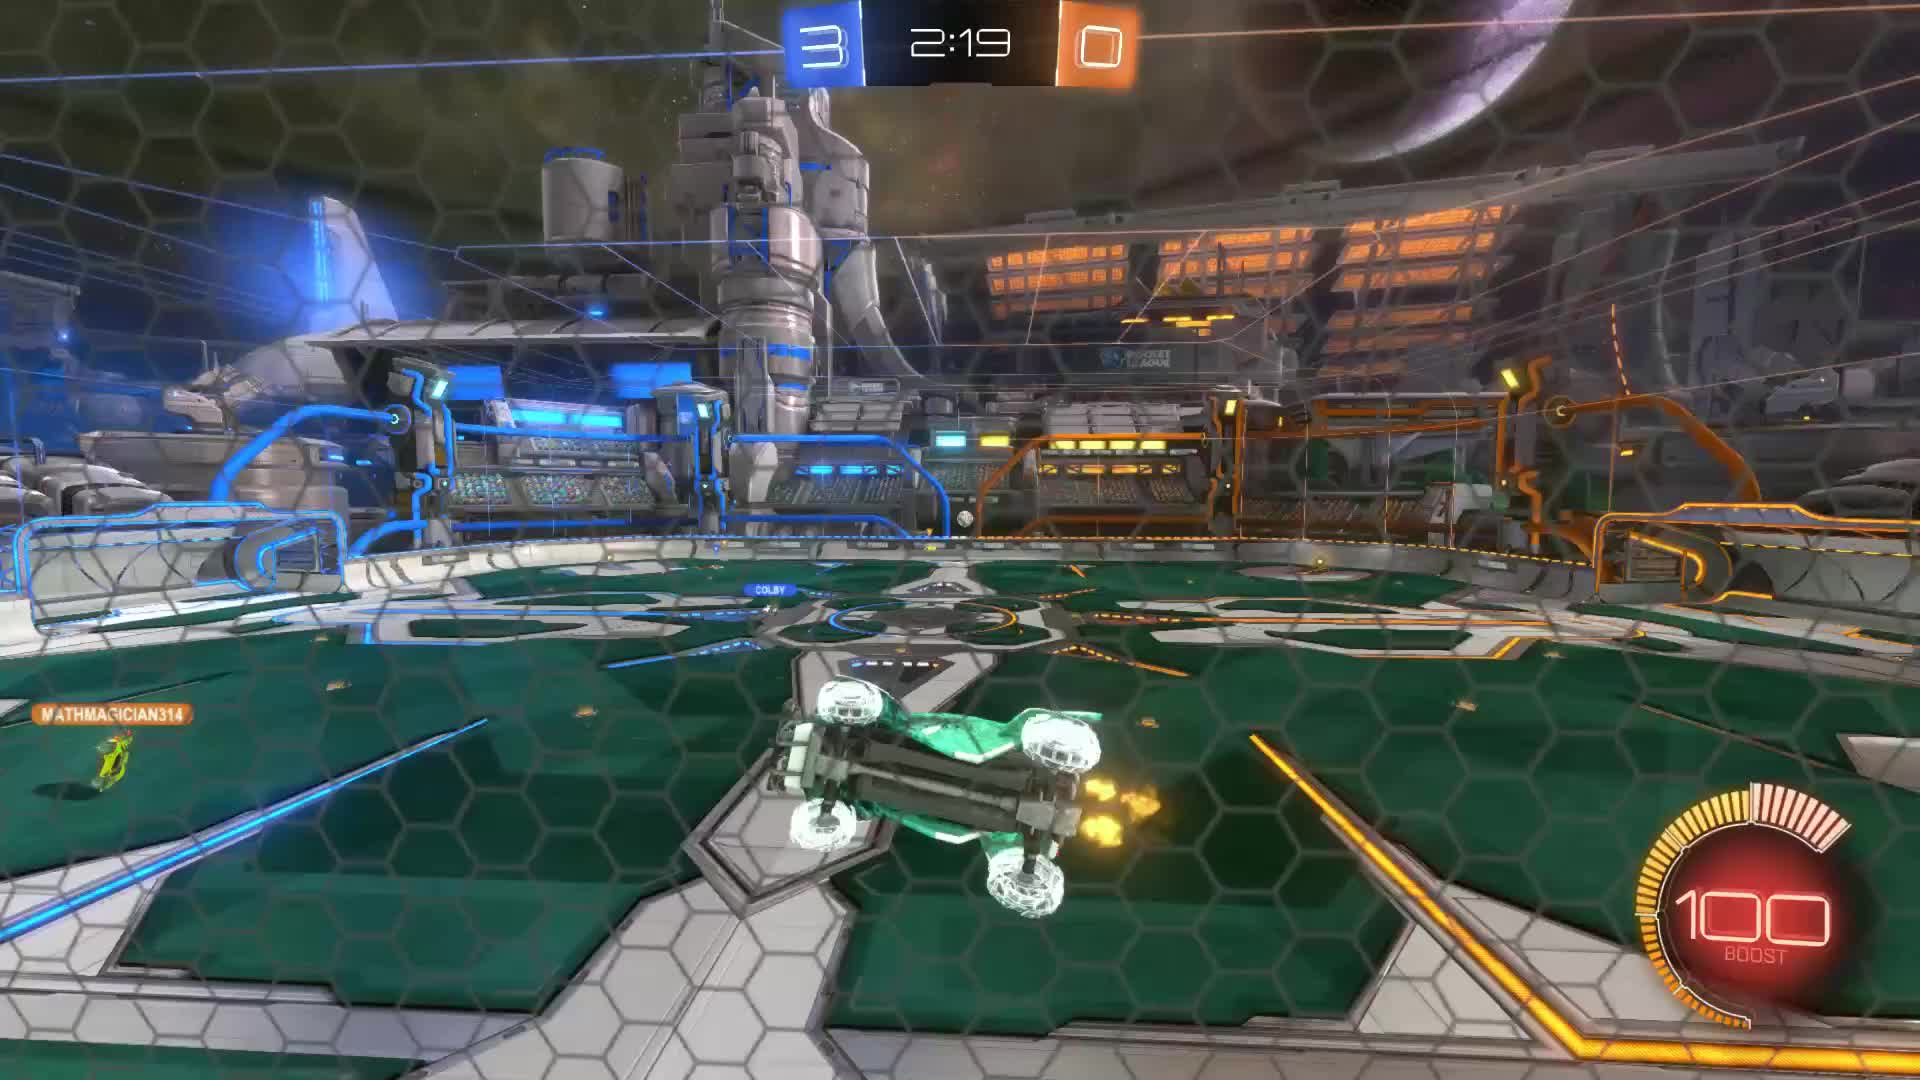 Gif Your Game, GifYourGame, Goal, Keysor, Rocket League, RocketLeague, ⏱️ 3's Ceiling shot, Braiden, Colby GIFs